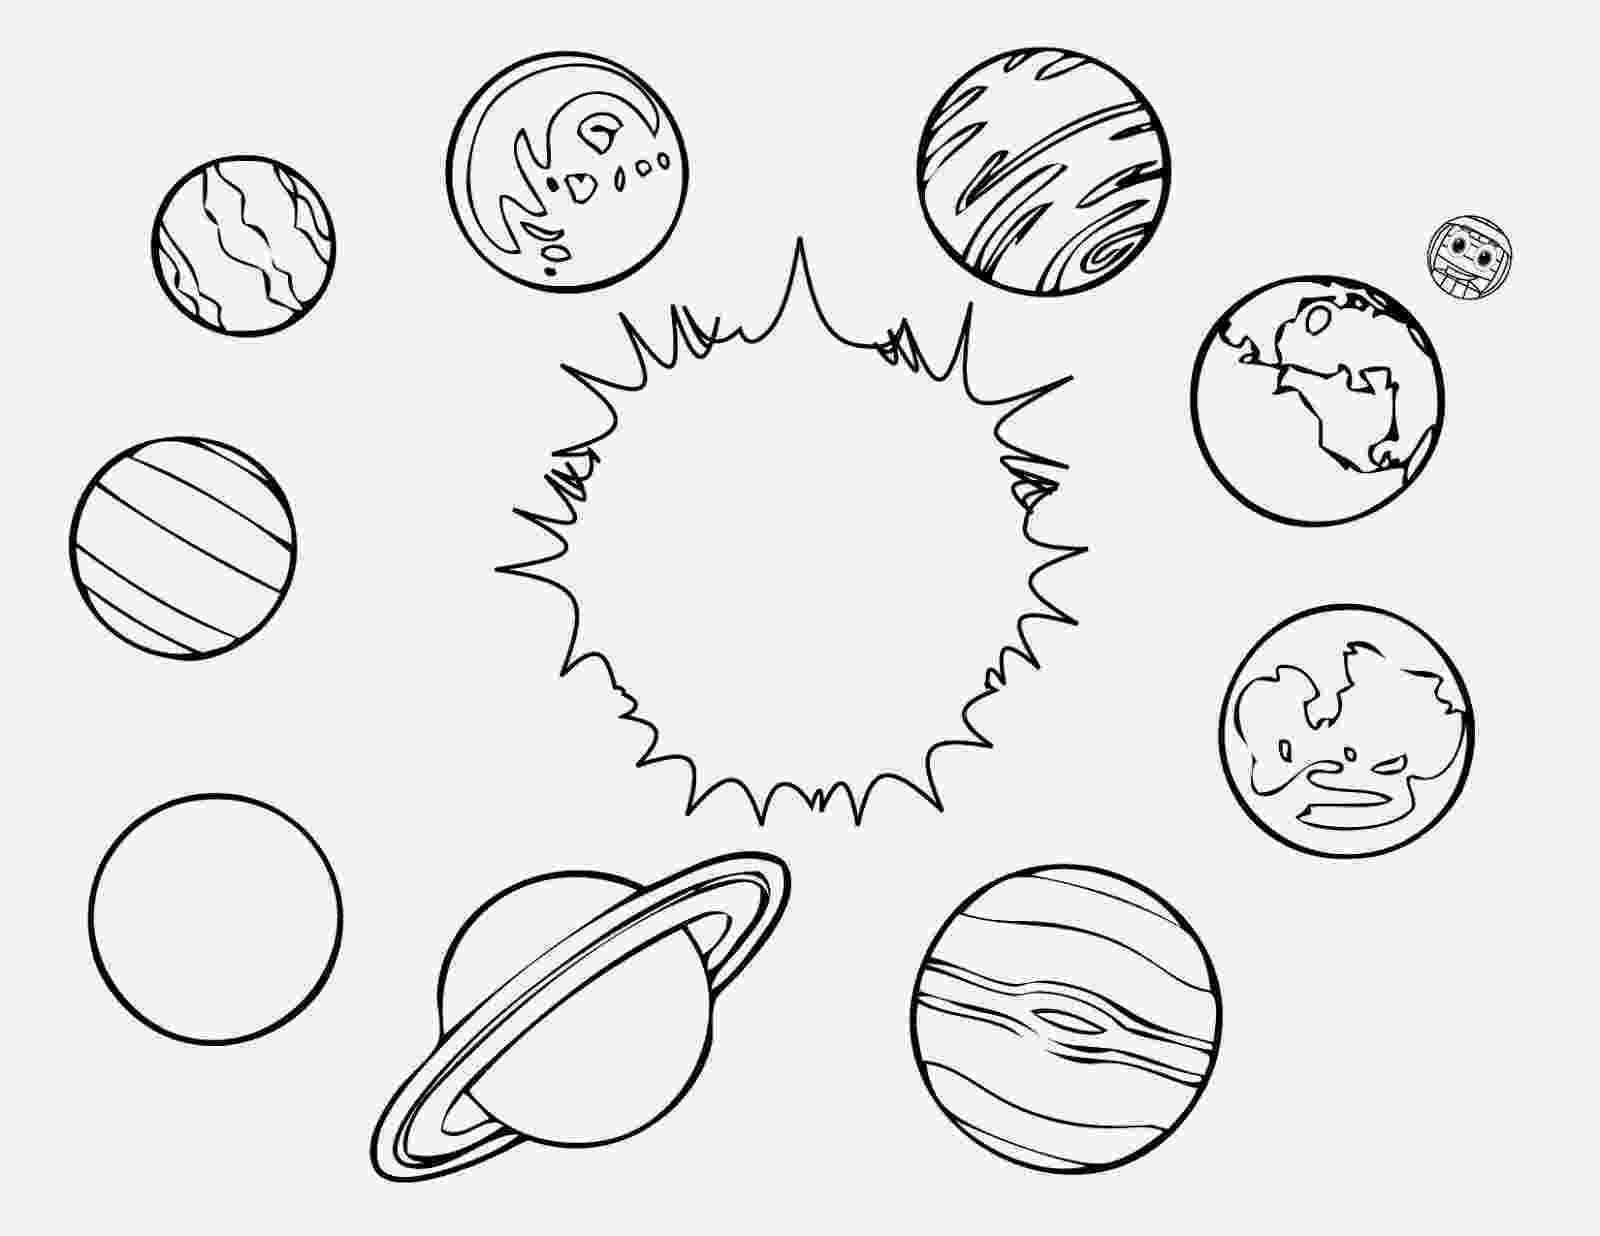 planets coloring page planet color sheet planets coloring page solar system coloring planets page